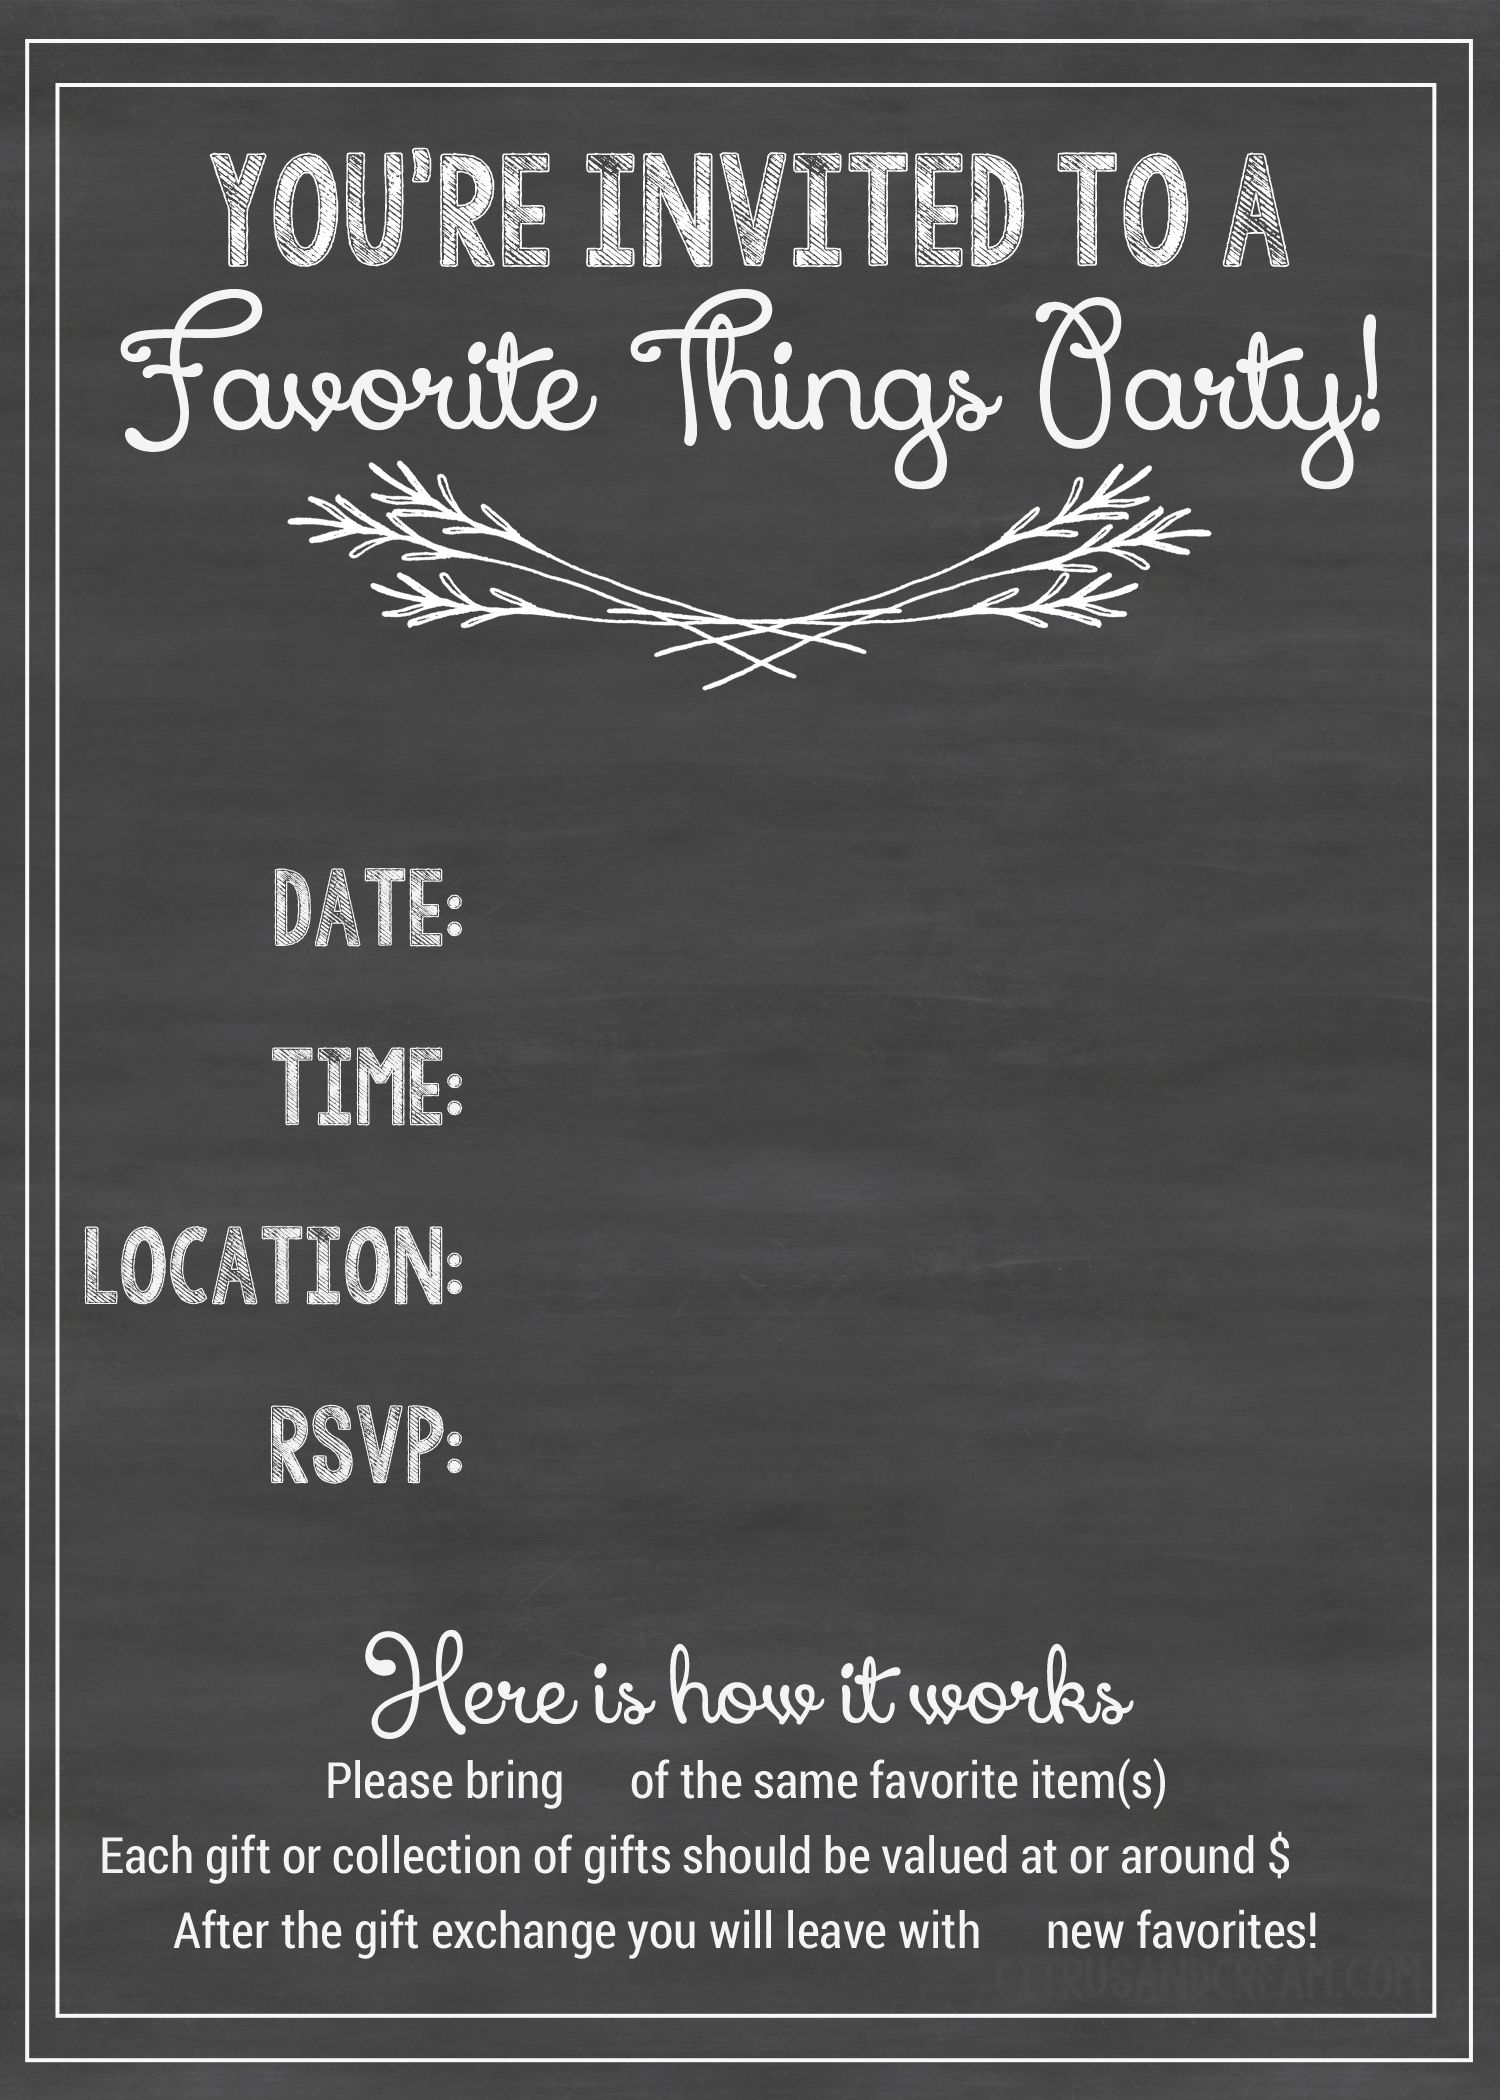 how to host a favorite things party including free facebook invite printable invitations and printable gift tags everything you need to know